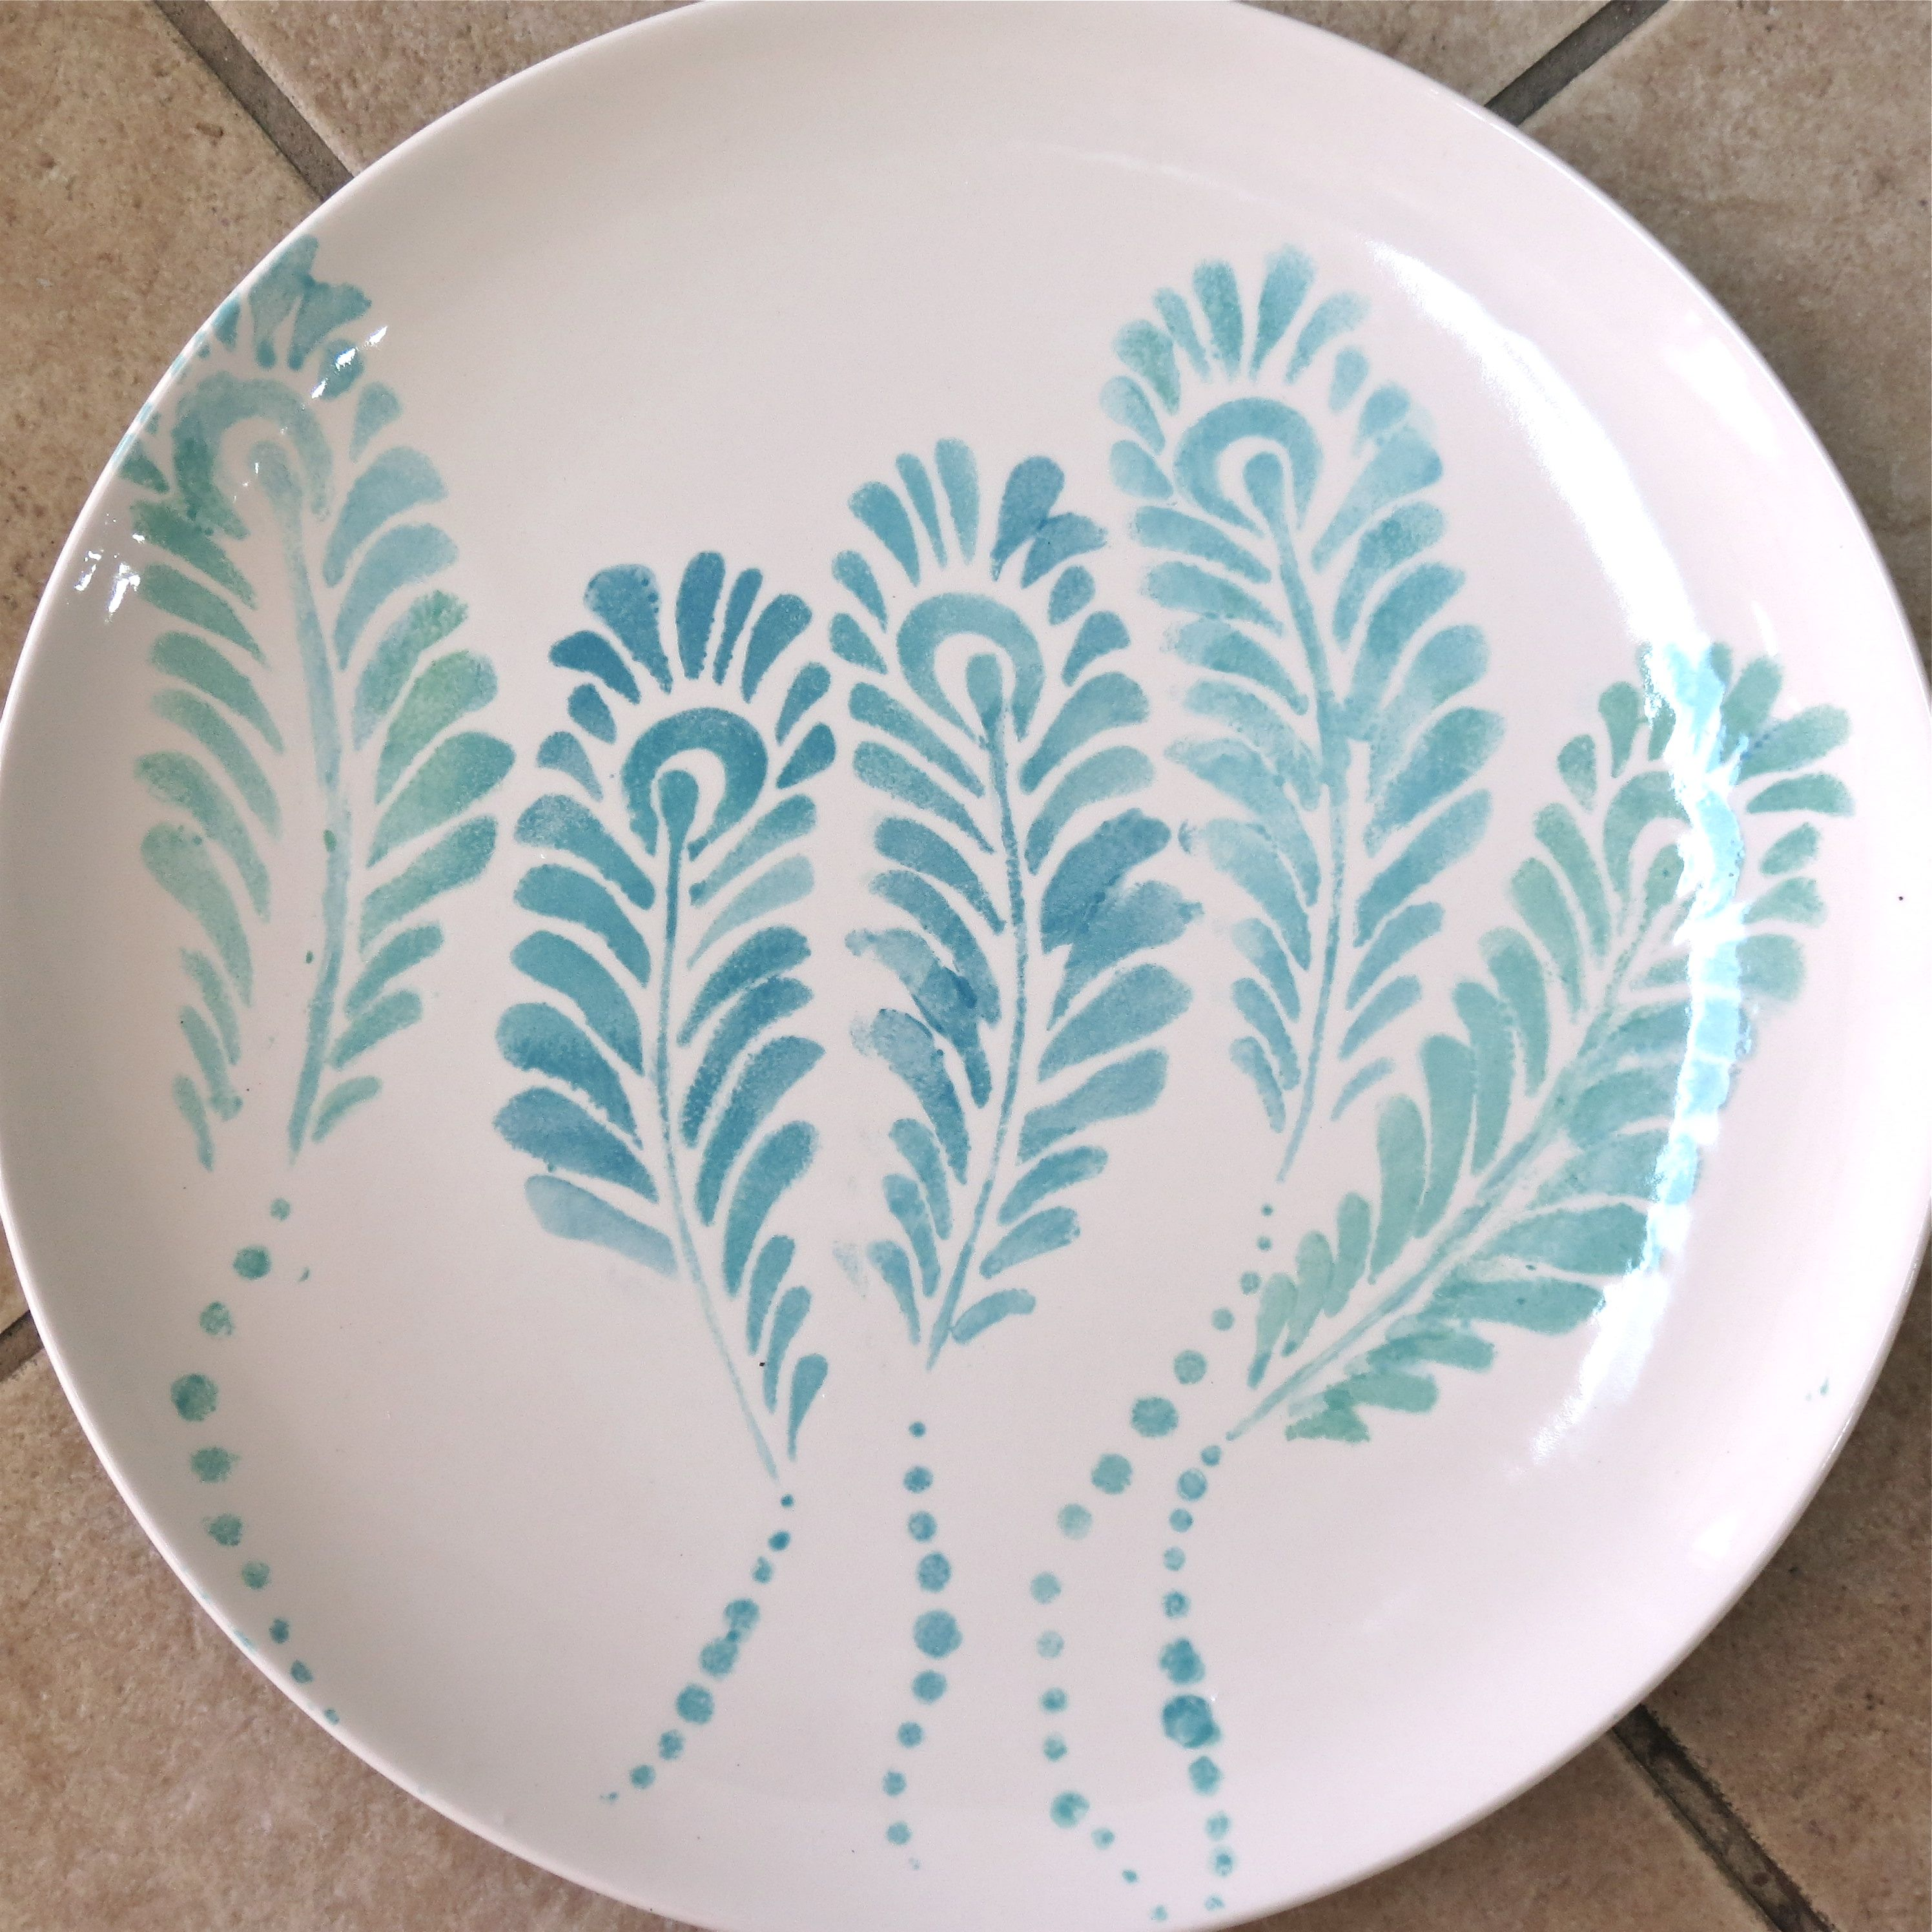 Peacock Feathers stencil - made by Balzer Designs and The Crafter's Workshop - Plate made at paint-your-own pottery place. @Julie Fei-Fan Balzer @Jaime Echt